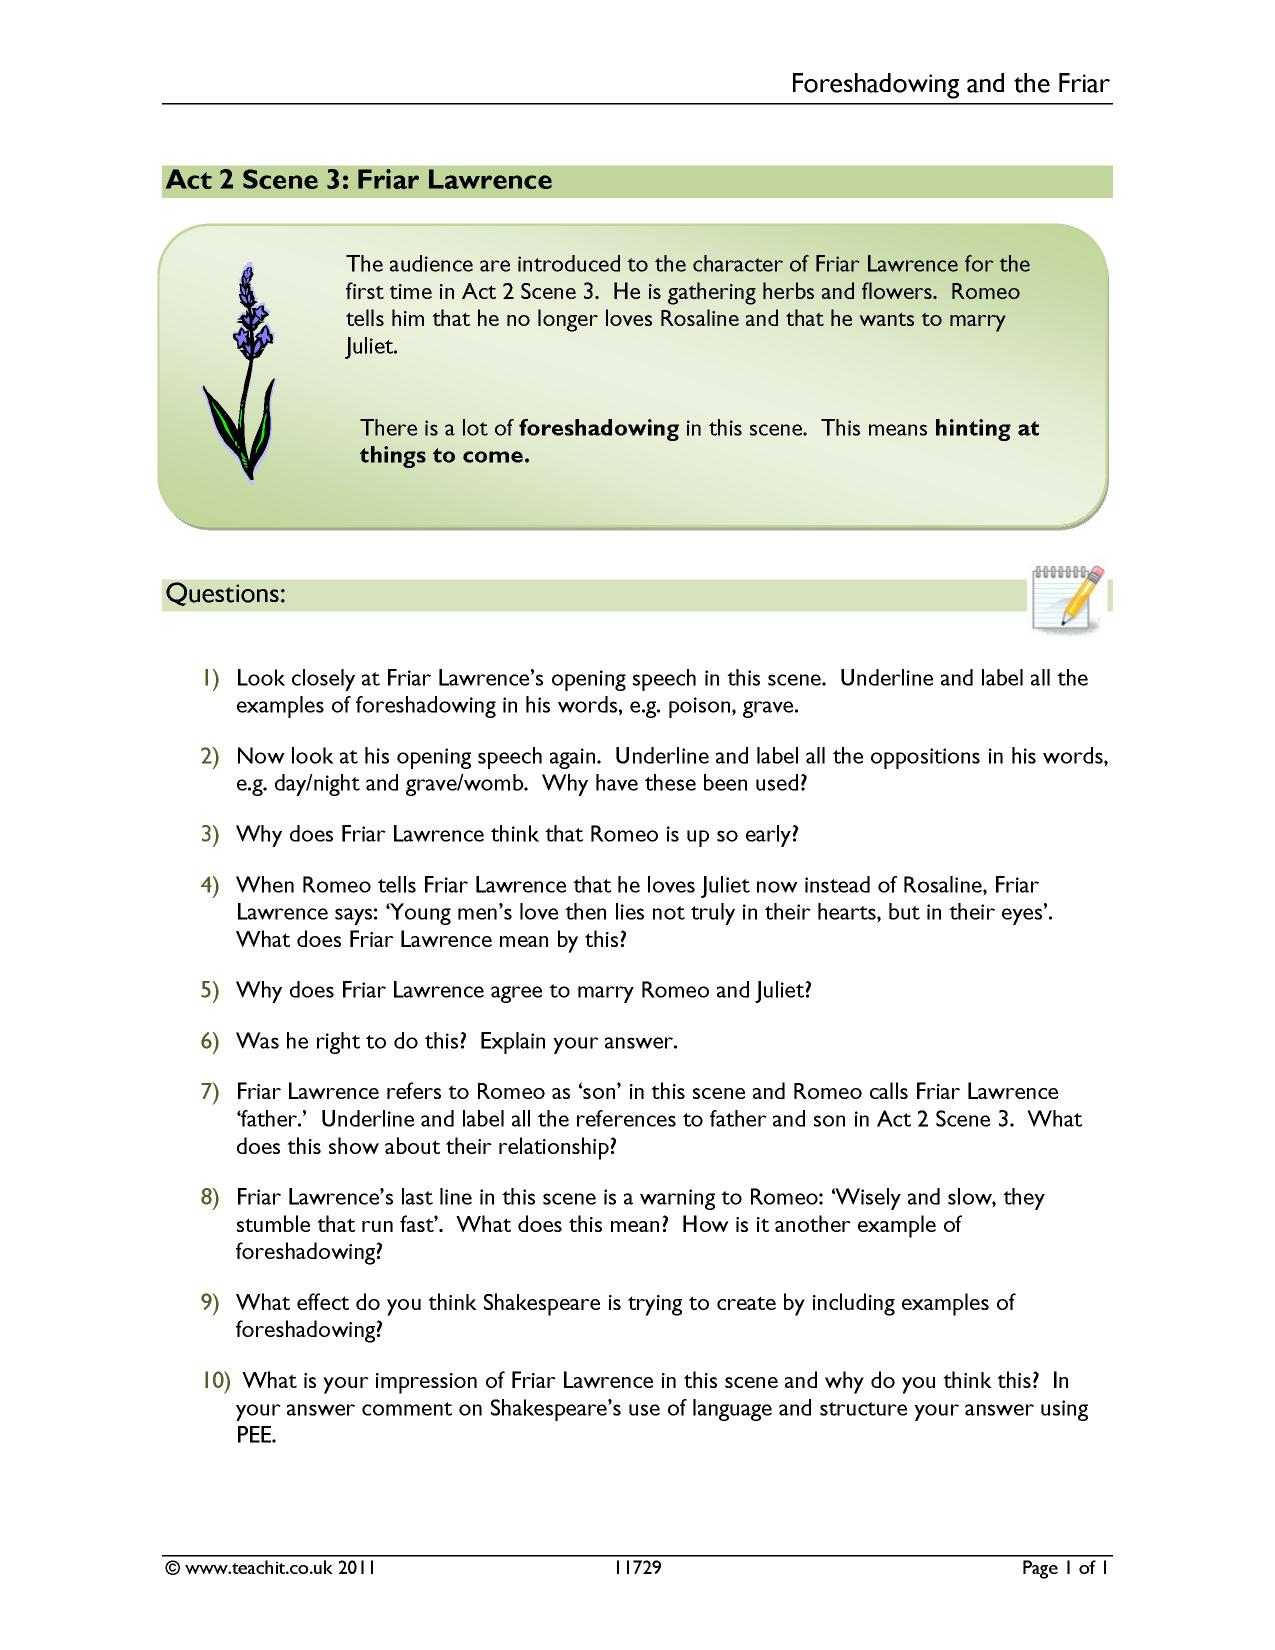 romeo and juliet practice essay questions Students, if you can score well on this quiz, you will do well on the final test for romeo and juliet use this quiz to practice your knowledge and find out whi.